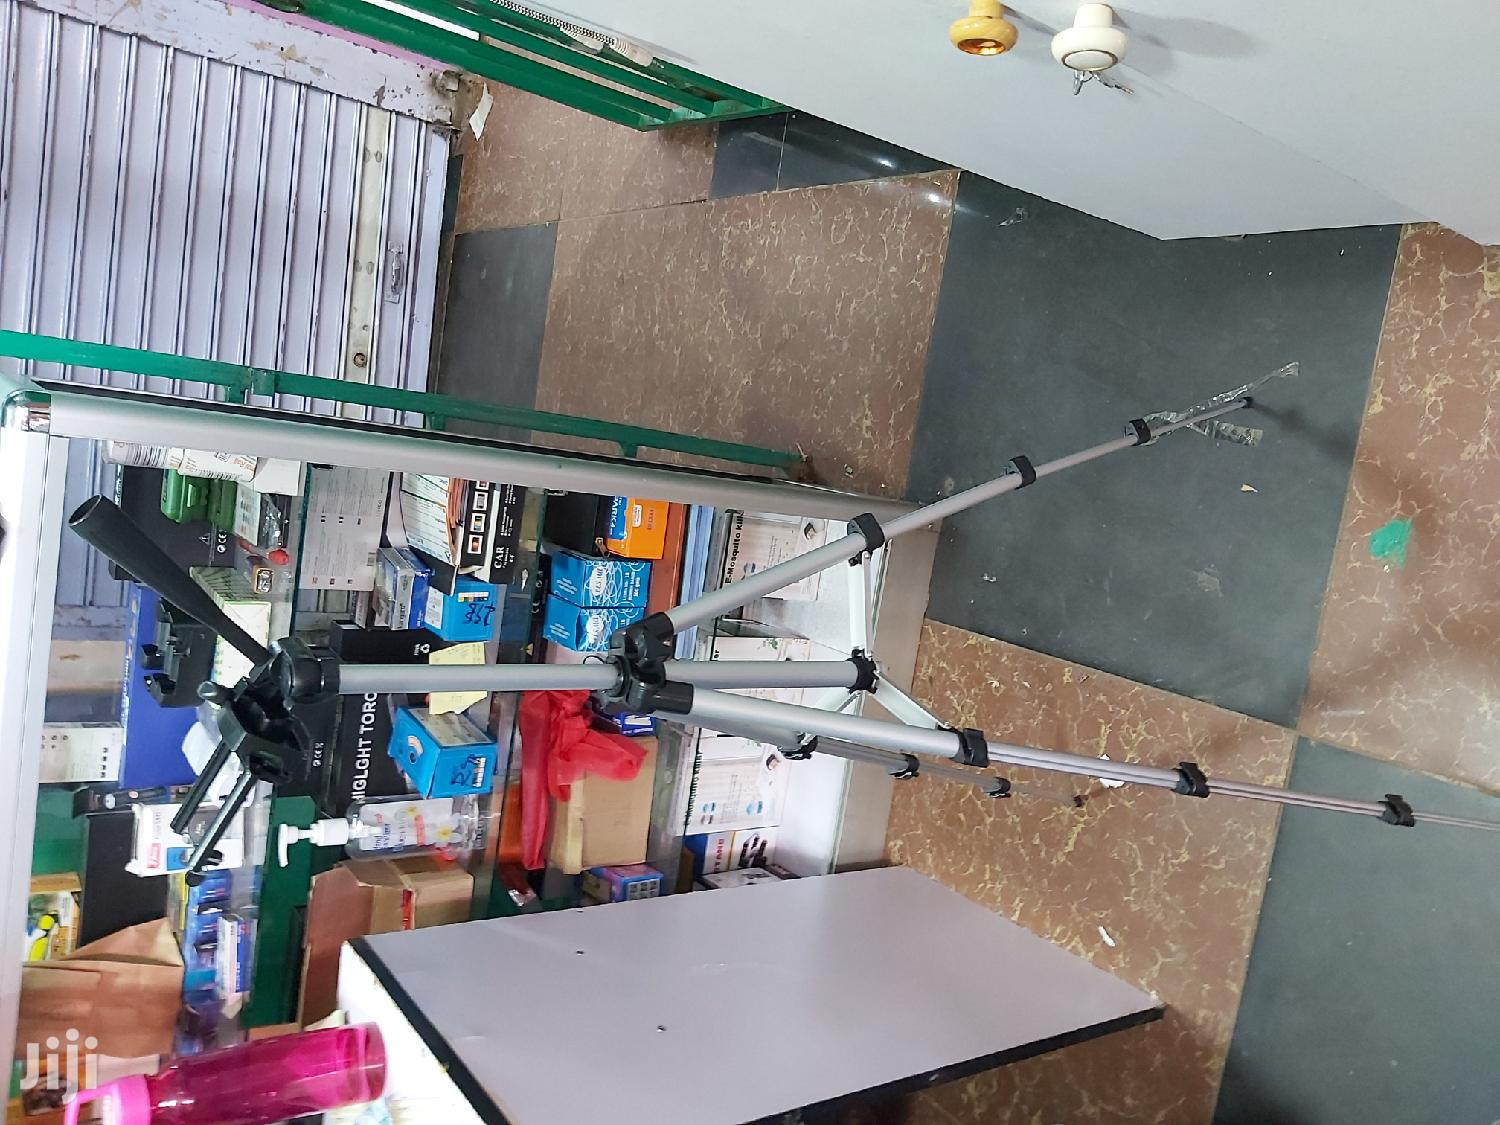 Phone / DSLR Camera Tripod Stand | Accessories for Mobile Phones & Tablets for sale in Nairobi Central, Nairobi, Kenya